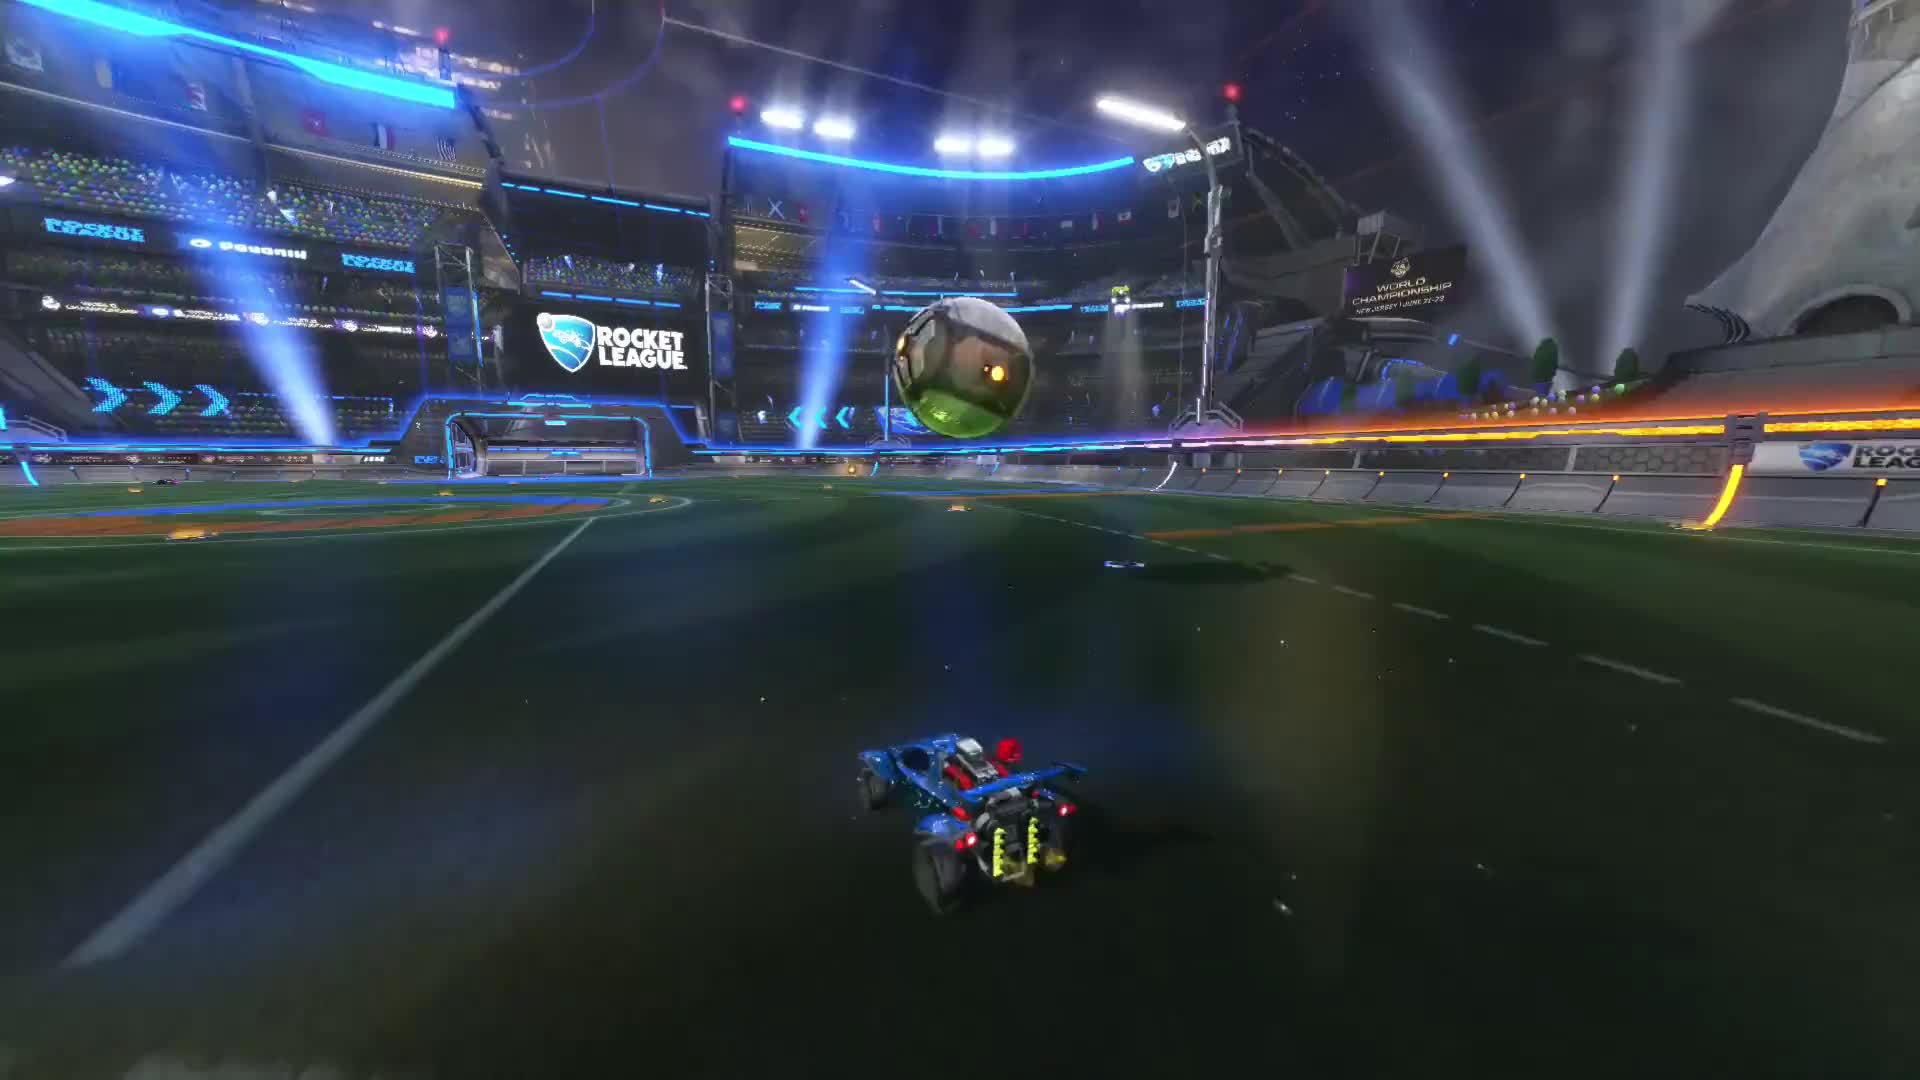 crrispy rl, gamer dvr, rocketleague, xbox, xbox one, xboxdvr, Trash CR GIFs